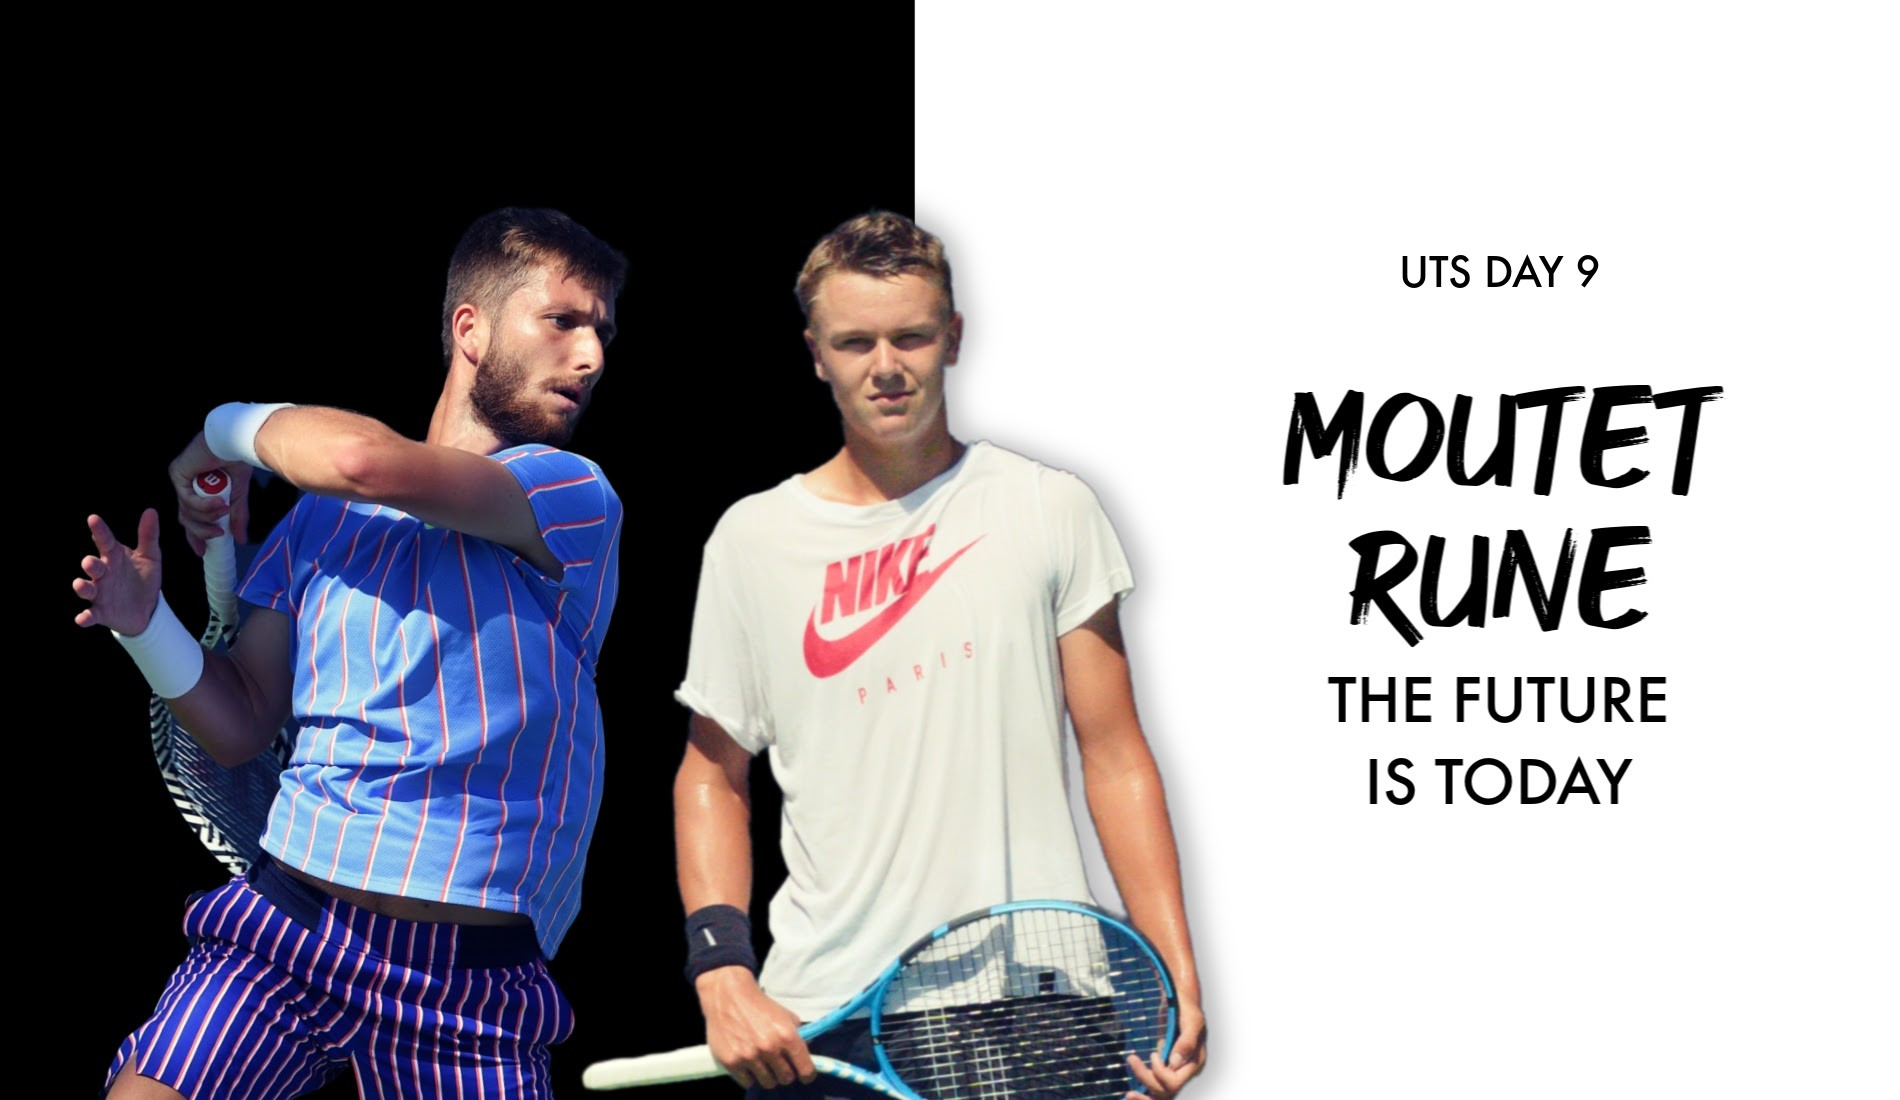 Moutet and Rune meet at UTS on SUnday